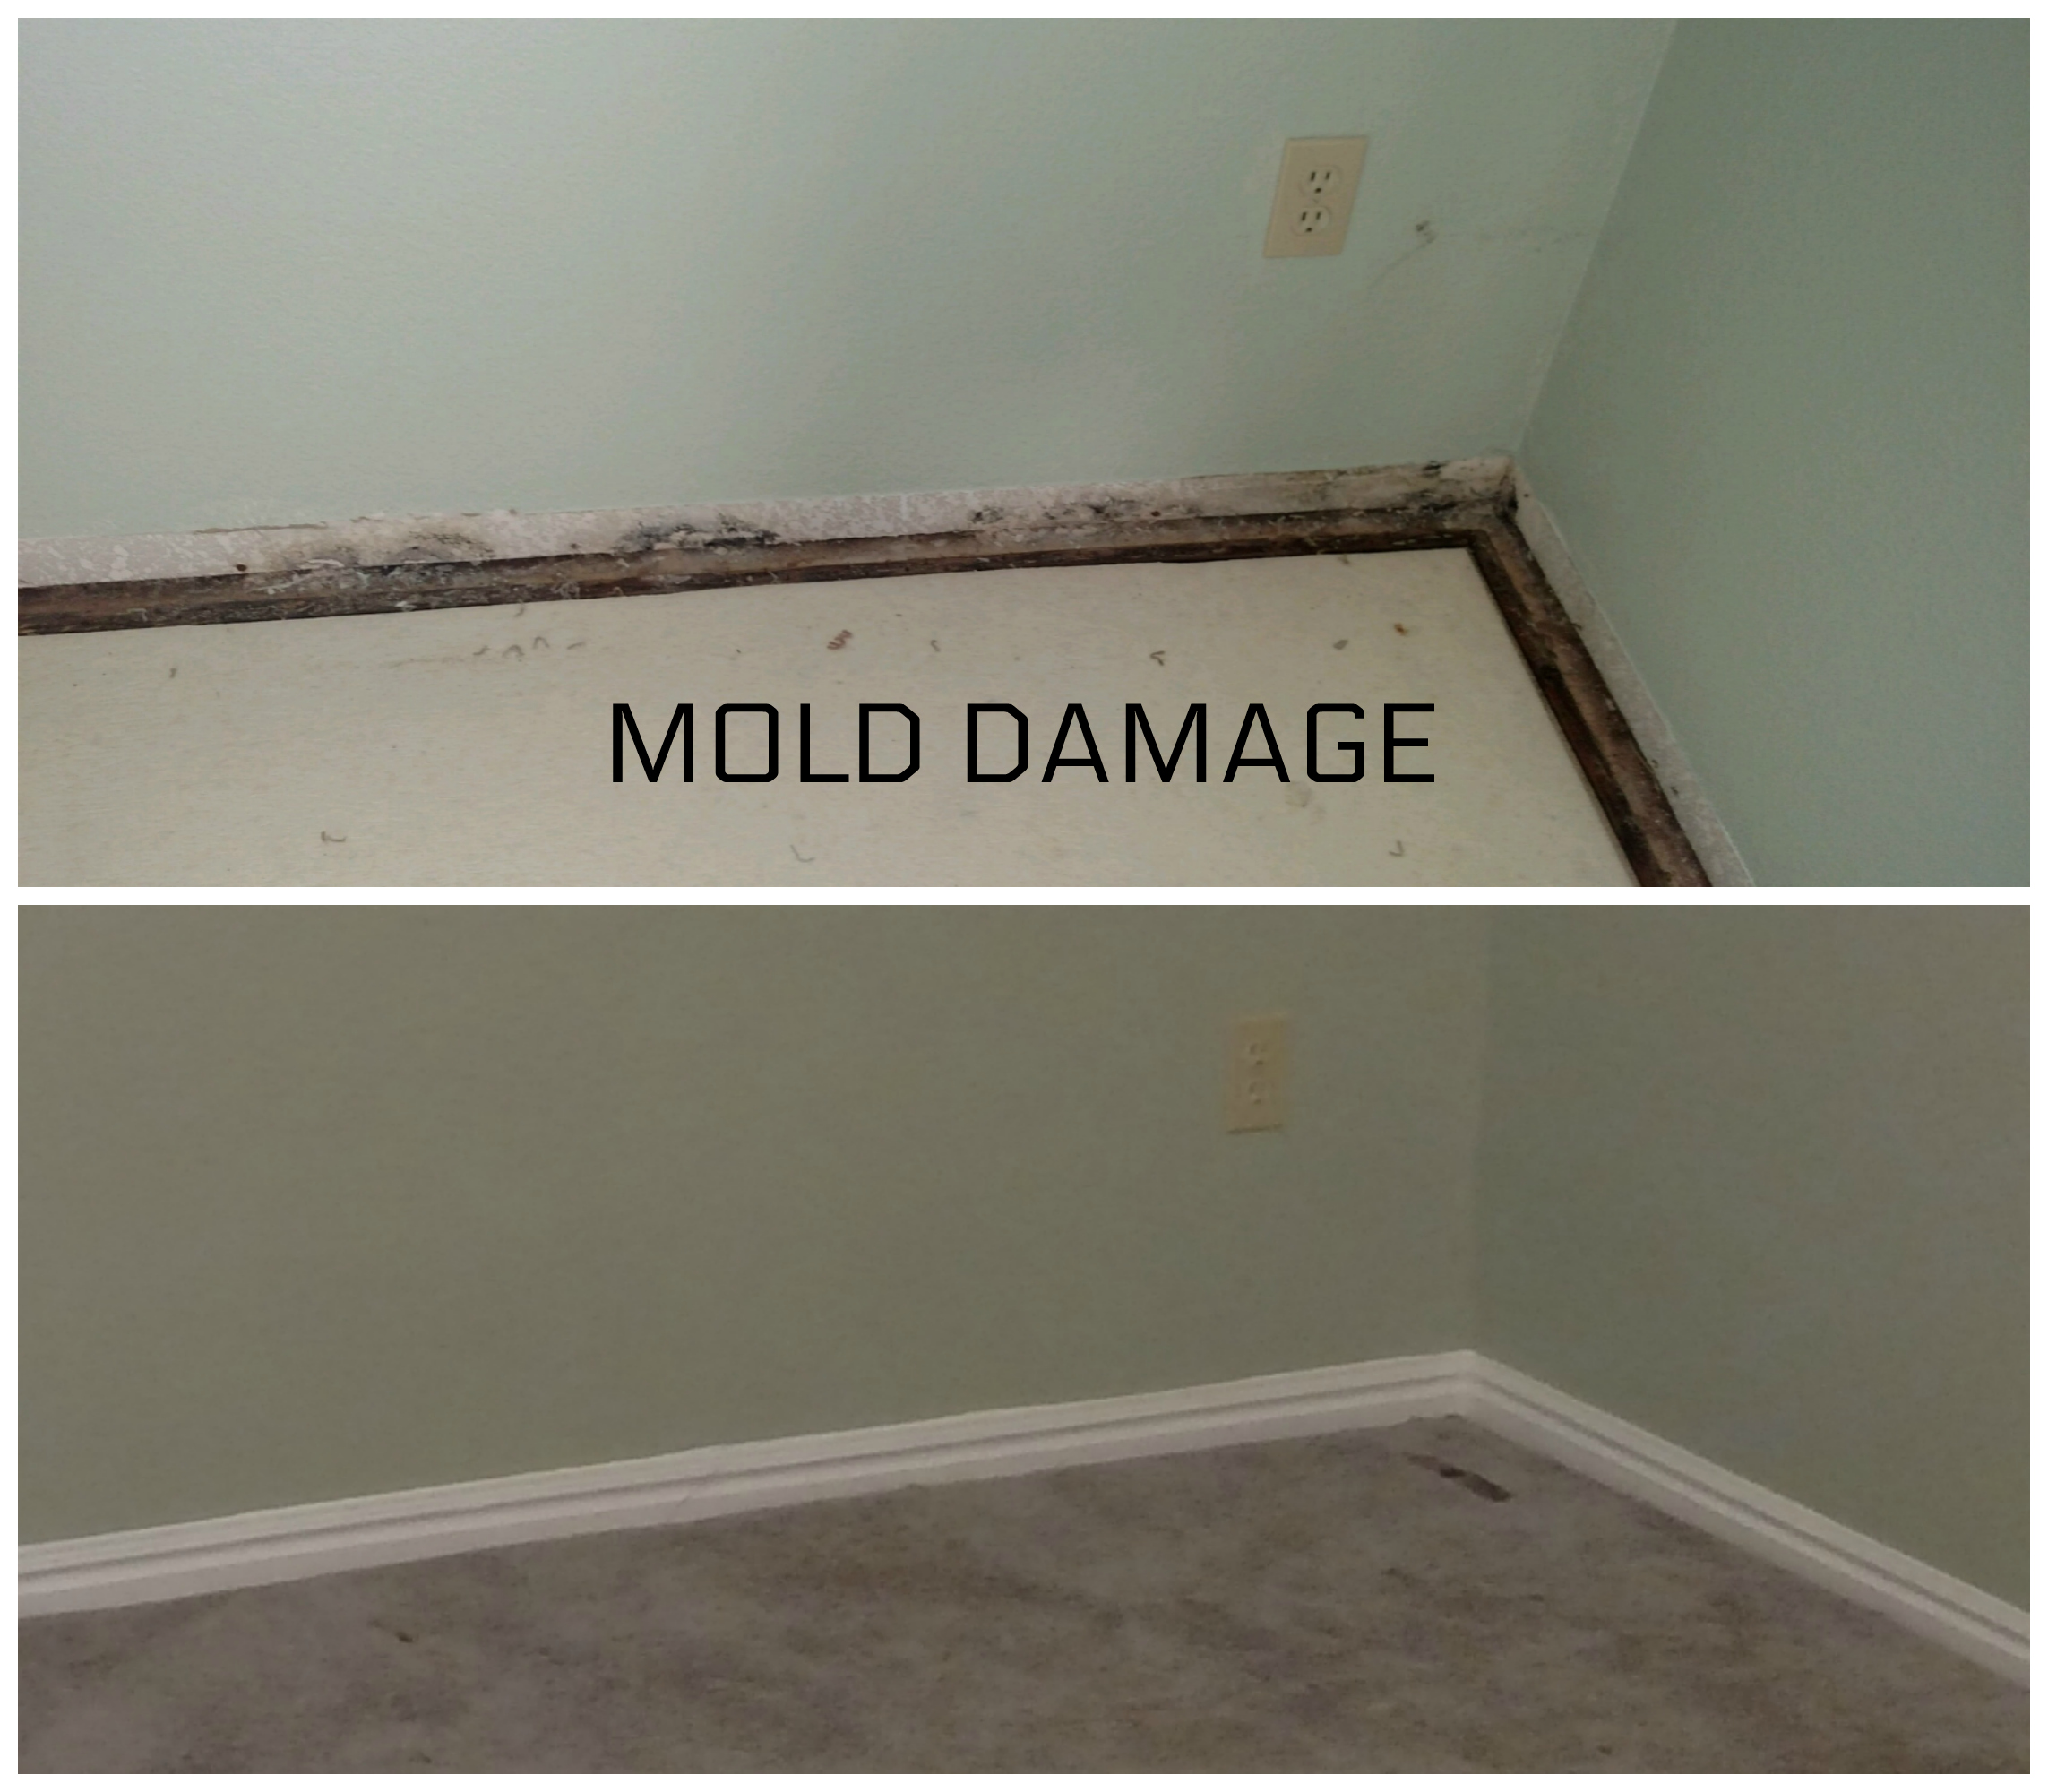 A Lot Of Water Damage Is Unseen If Left Untreated It Can Be Costly Repair Anytime Moisture Sits The Possibility Mold An Issue